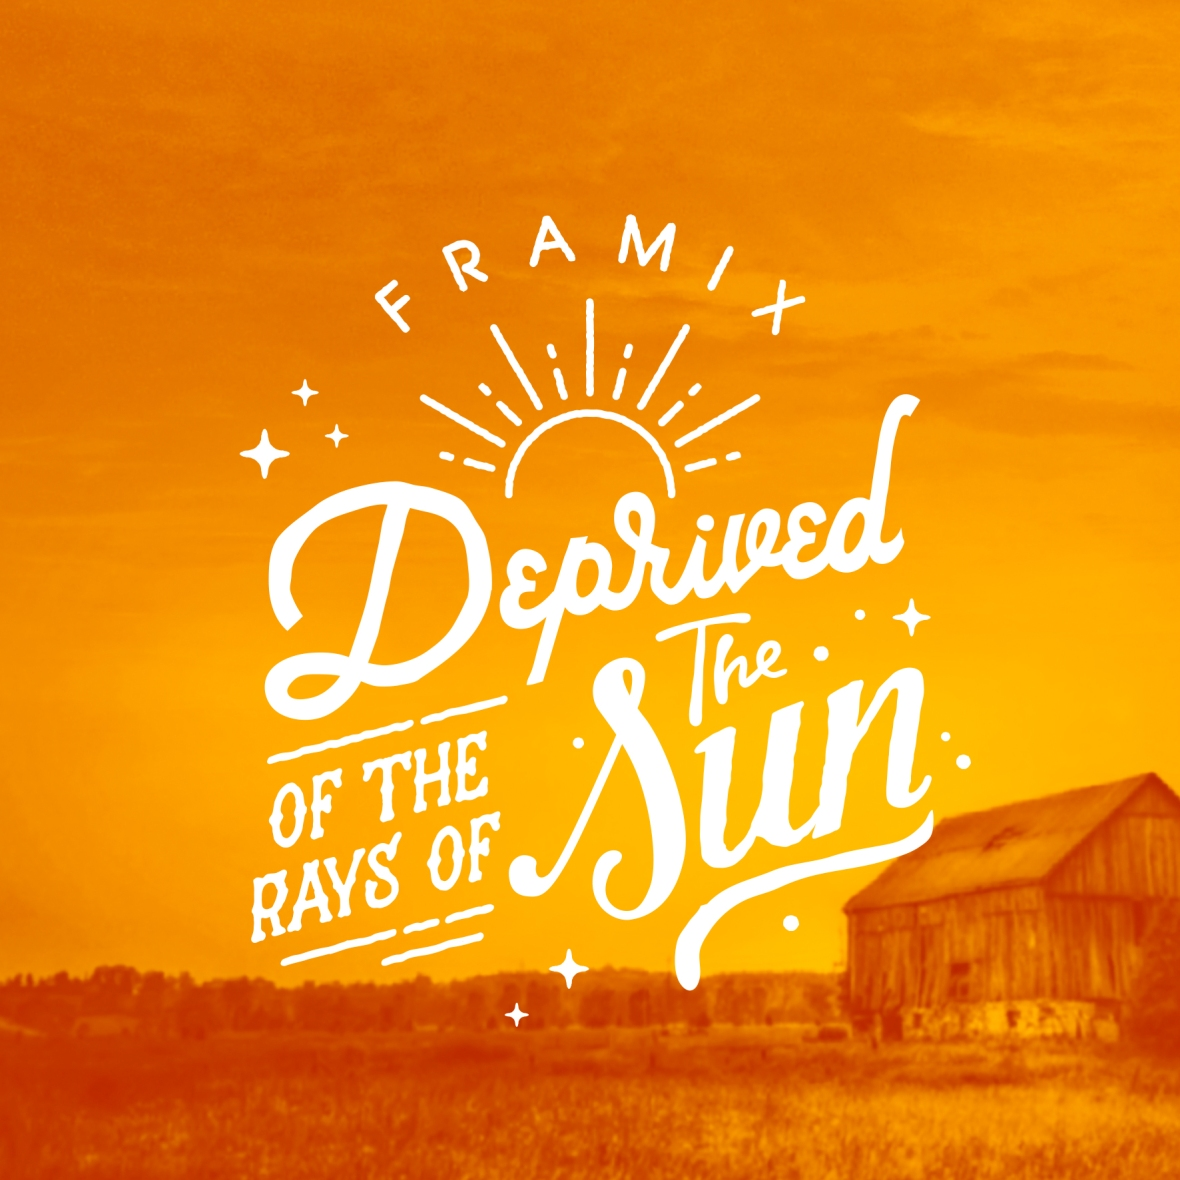 Framix - Deprived of the Rays of the Sun